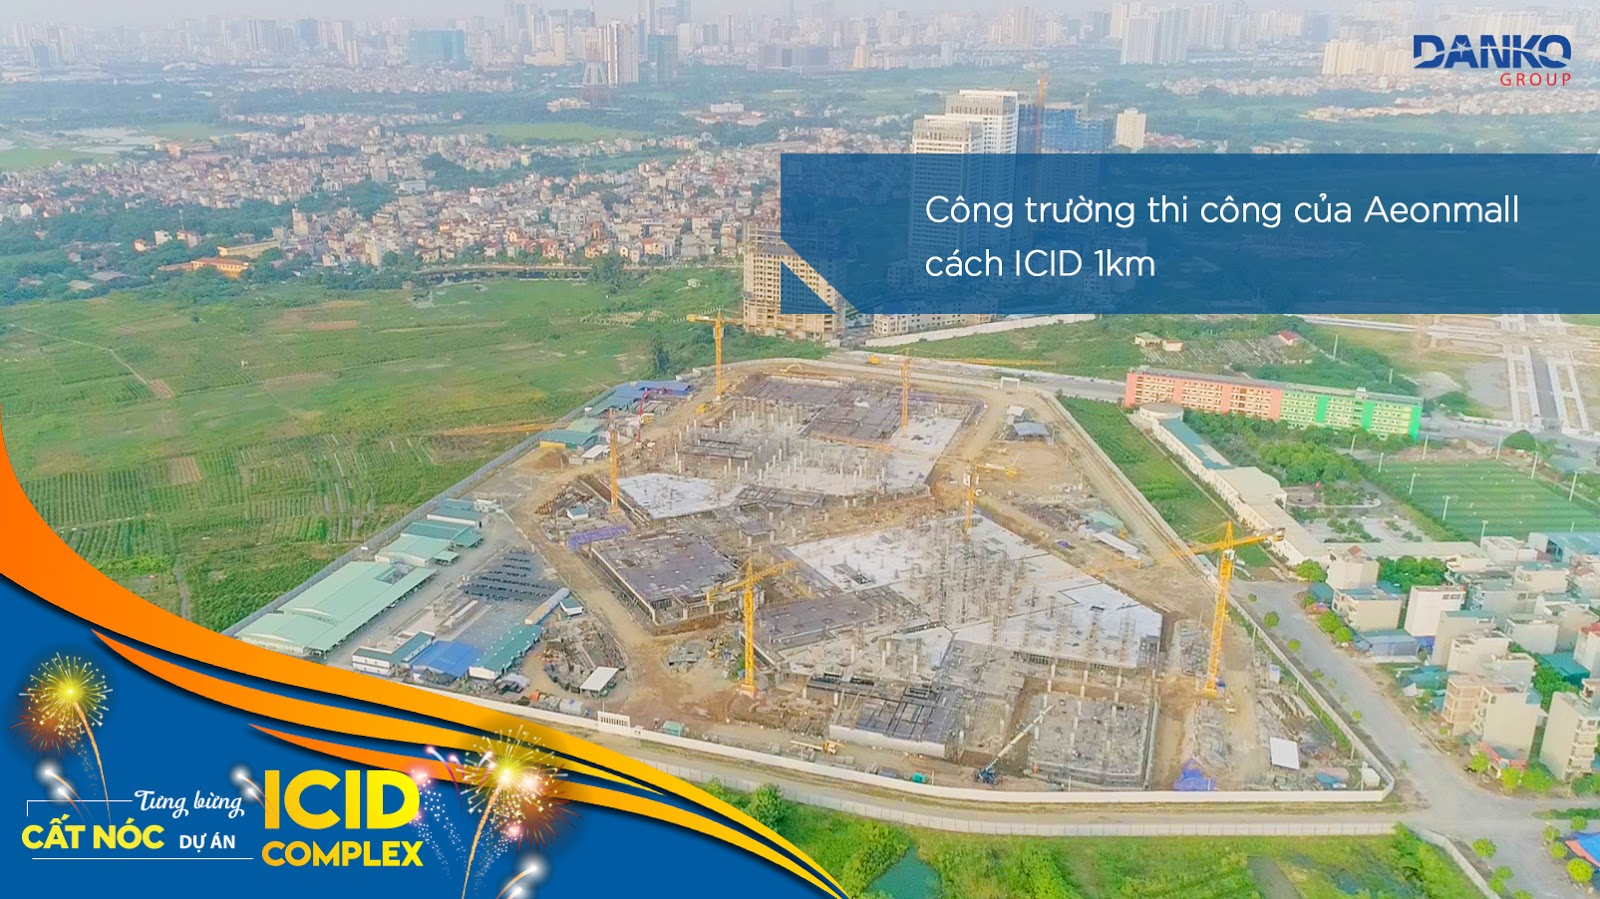 aeonmall-canh-icid-complex-le-trong-tan